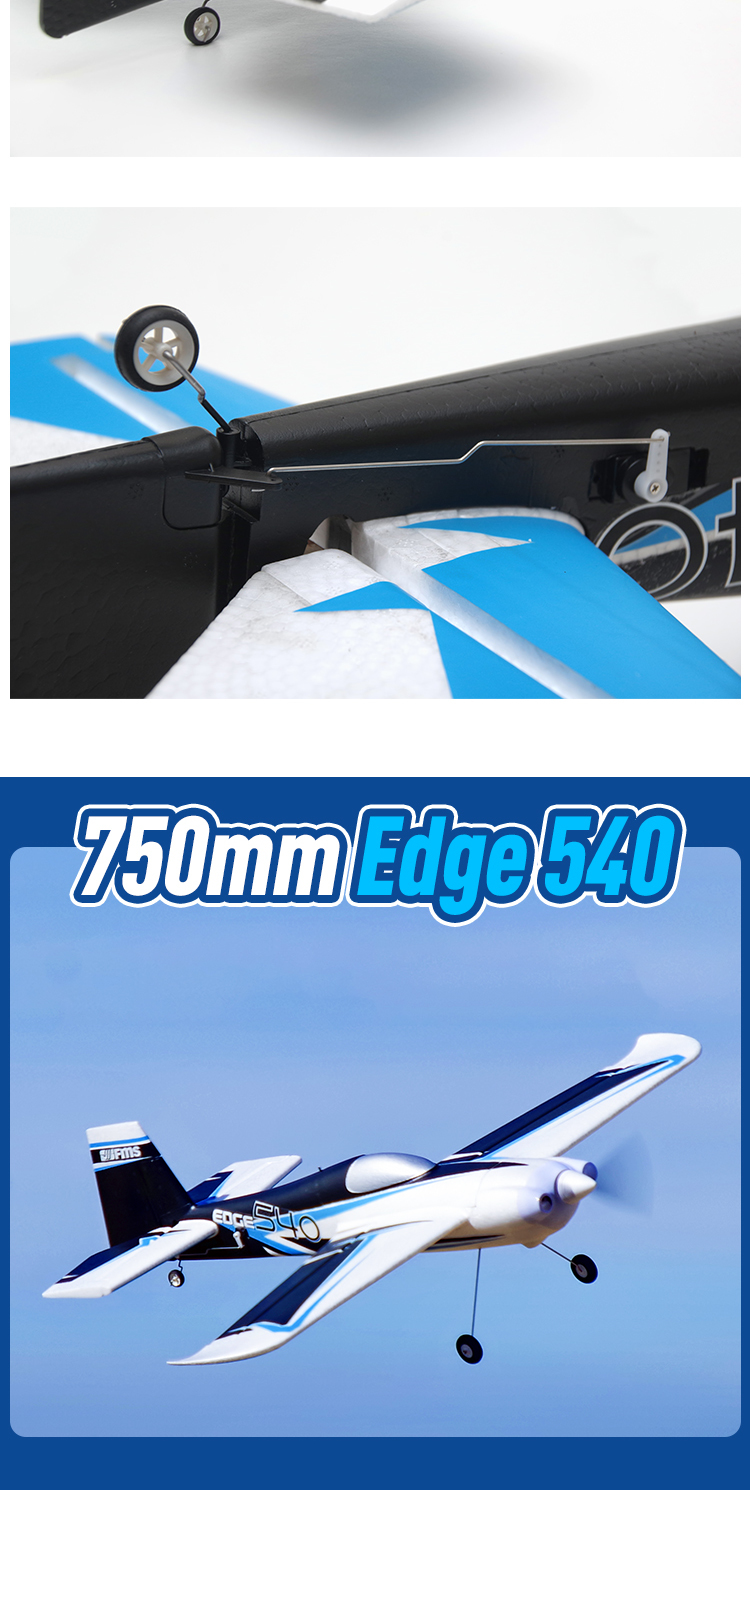 FMS RC Airplane Plane 750mm Edge 540 3D Acrobatic Sport